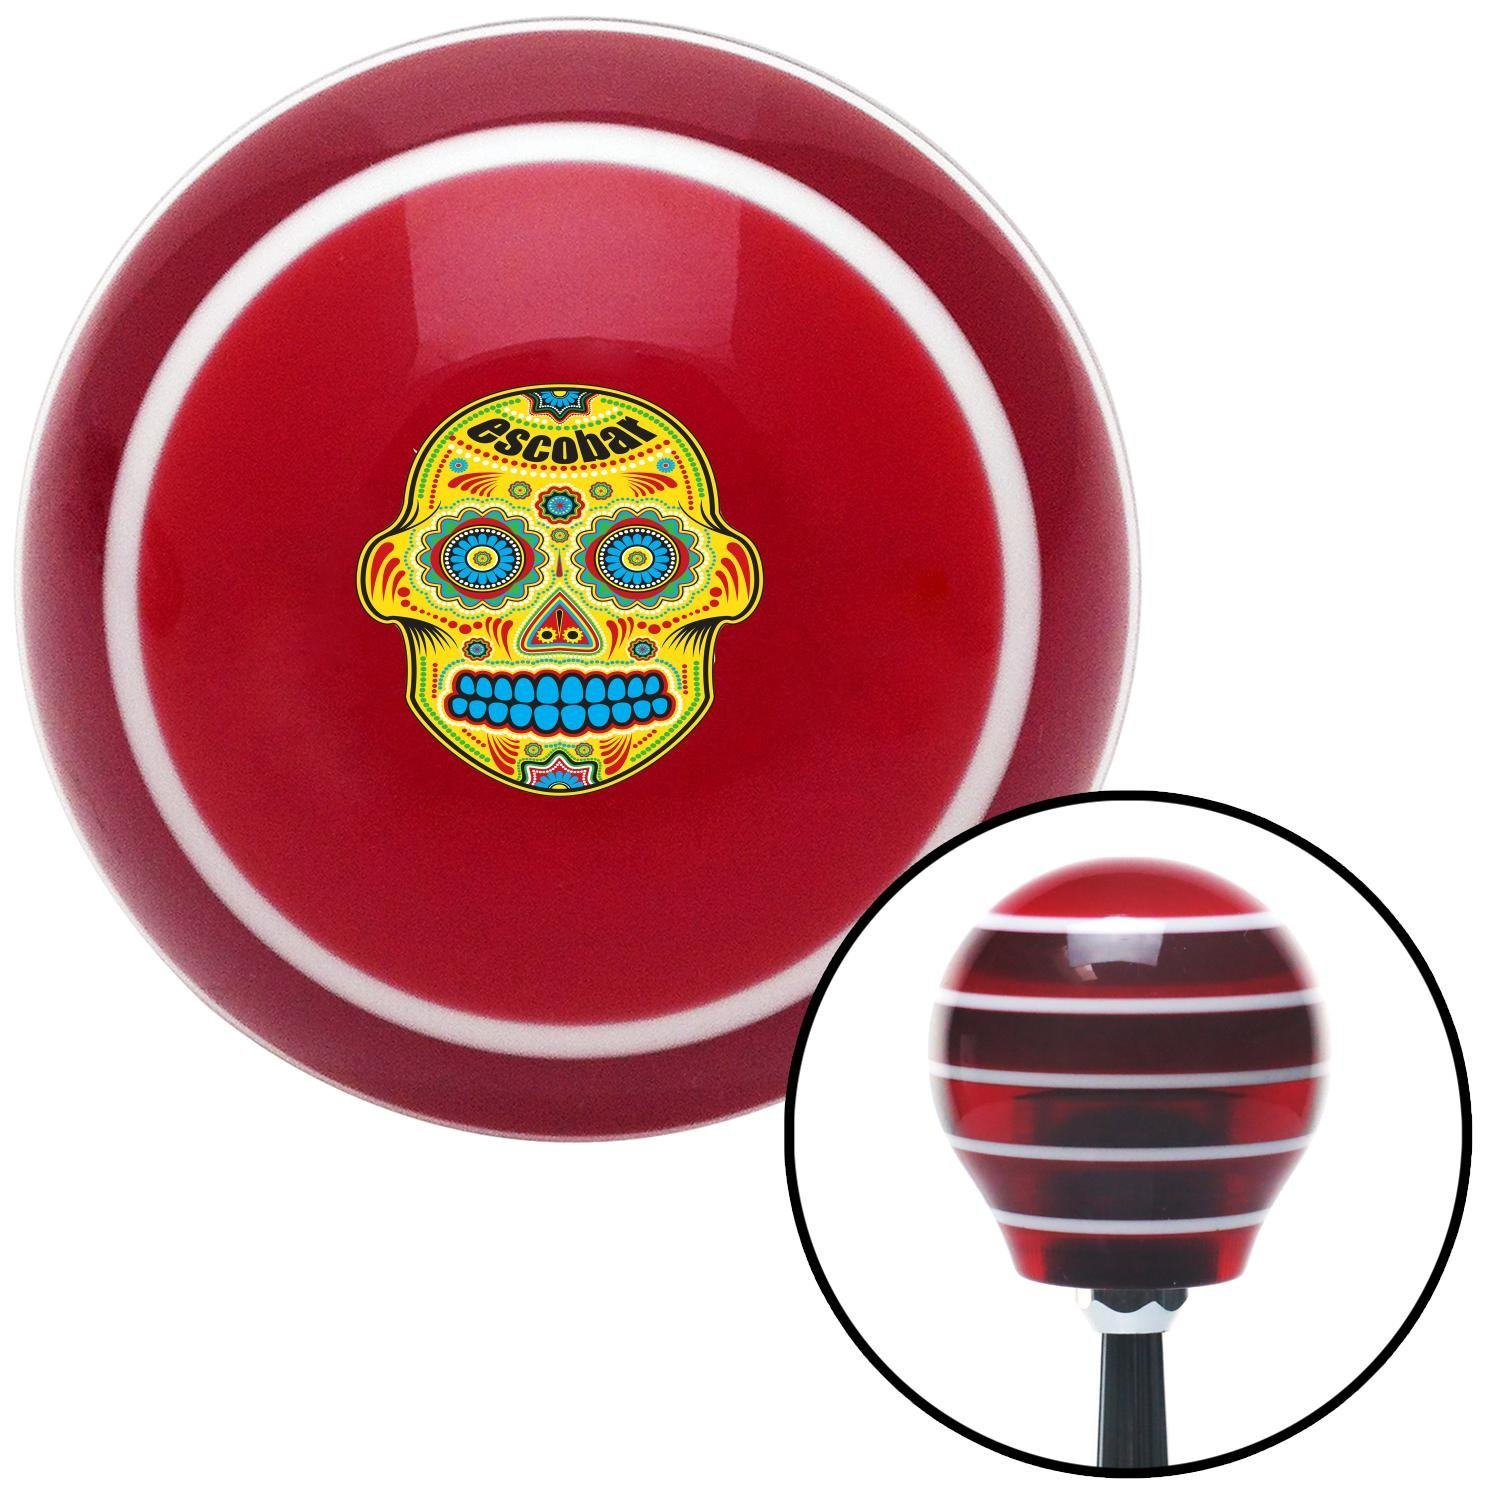 American Shifter 118364 Red Stripe Shift Knob with M16 x 1.5 Insert Escobar Day of Dead